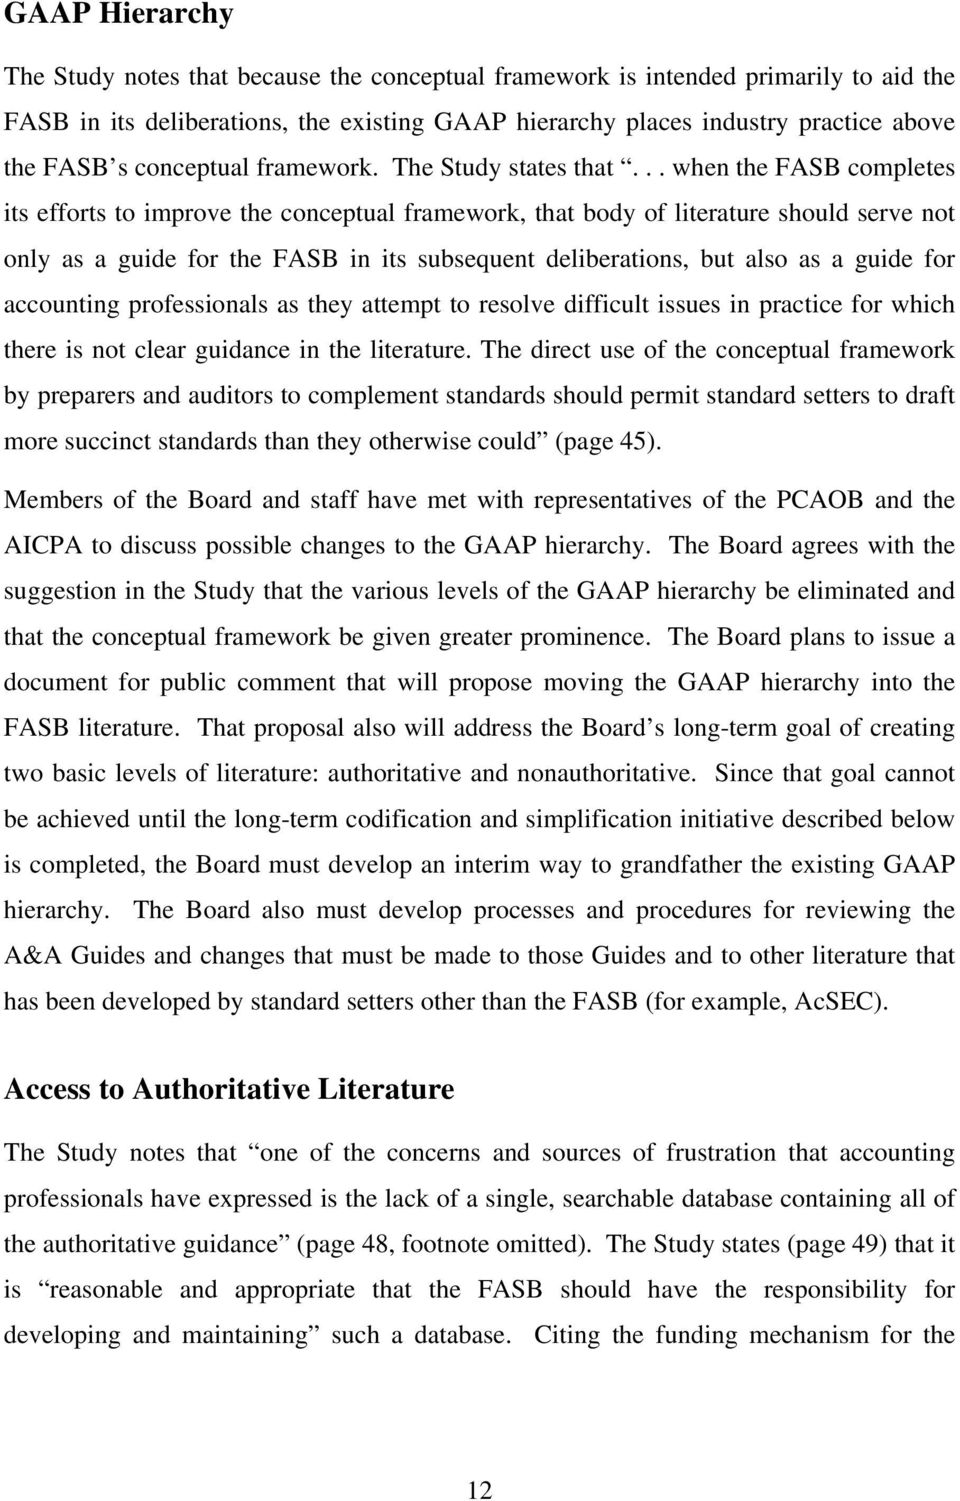 .. when the FASB completes its efforts to improve the conceptual framework, that body of literature should serve not only as a guide for the FASB in its subsequent deliberations, but also as a guide